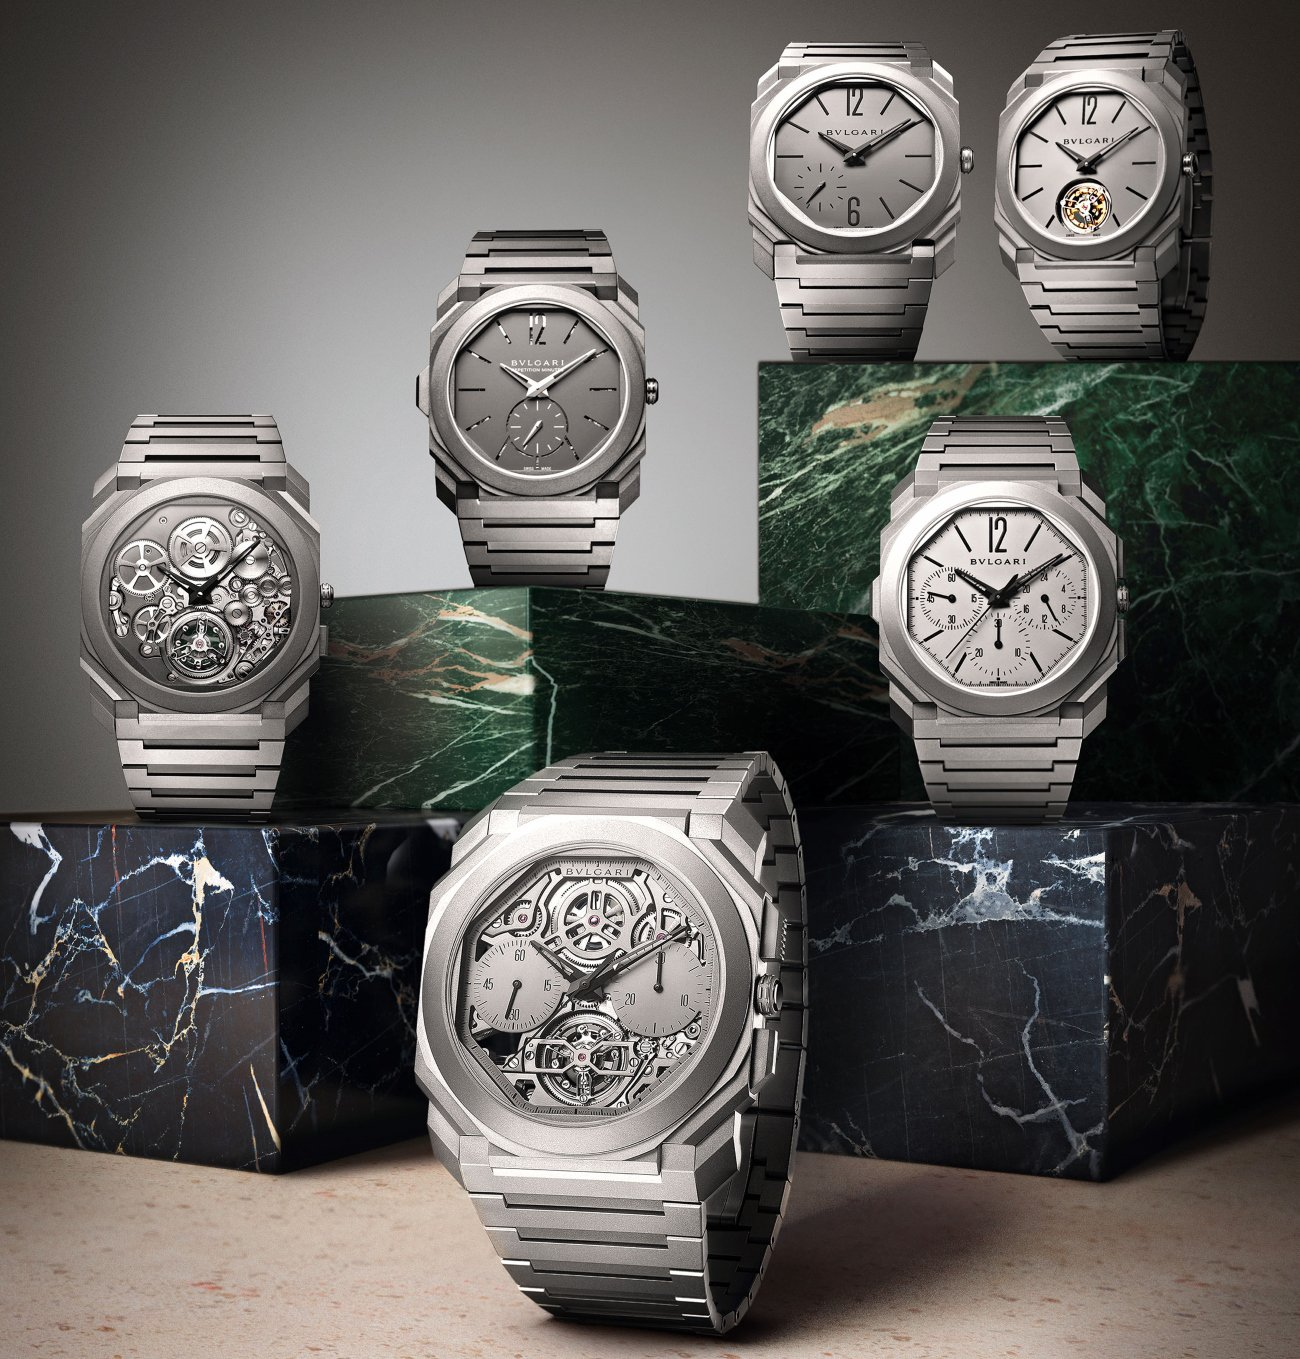 Bulgari_octo-finissimo-world-record-saga_-_europa_star_magazine_2020